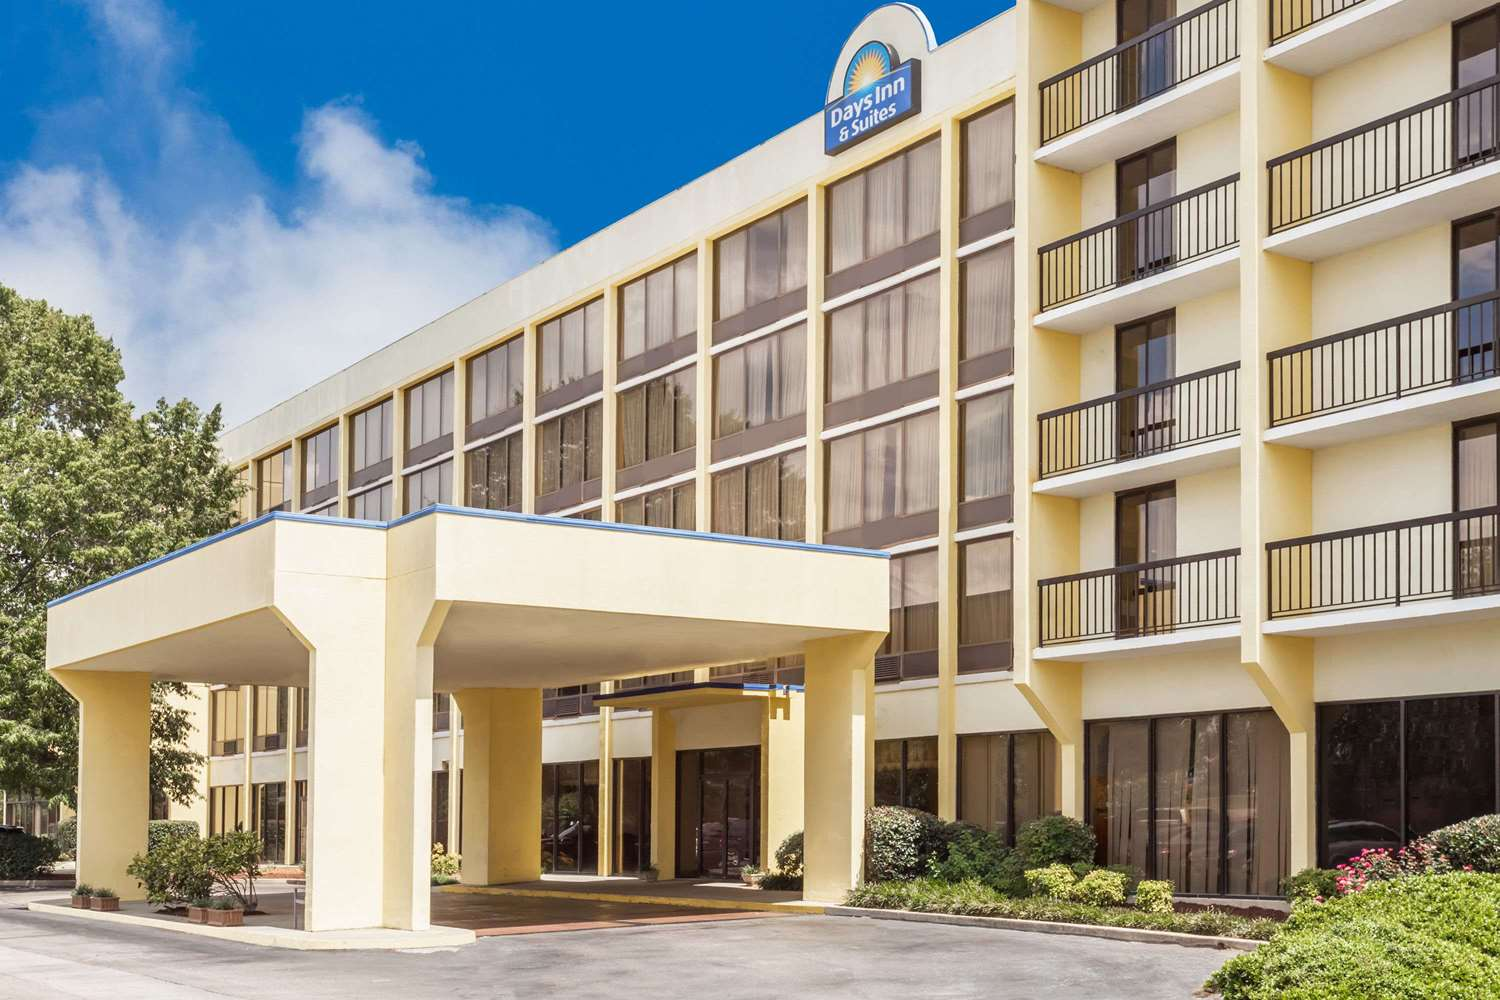 Hotels Near Fort Jackson Sc With Indoor Pool